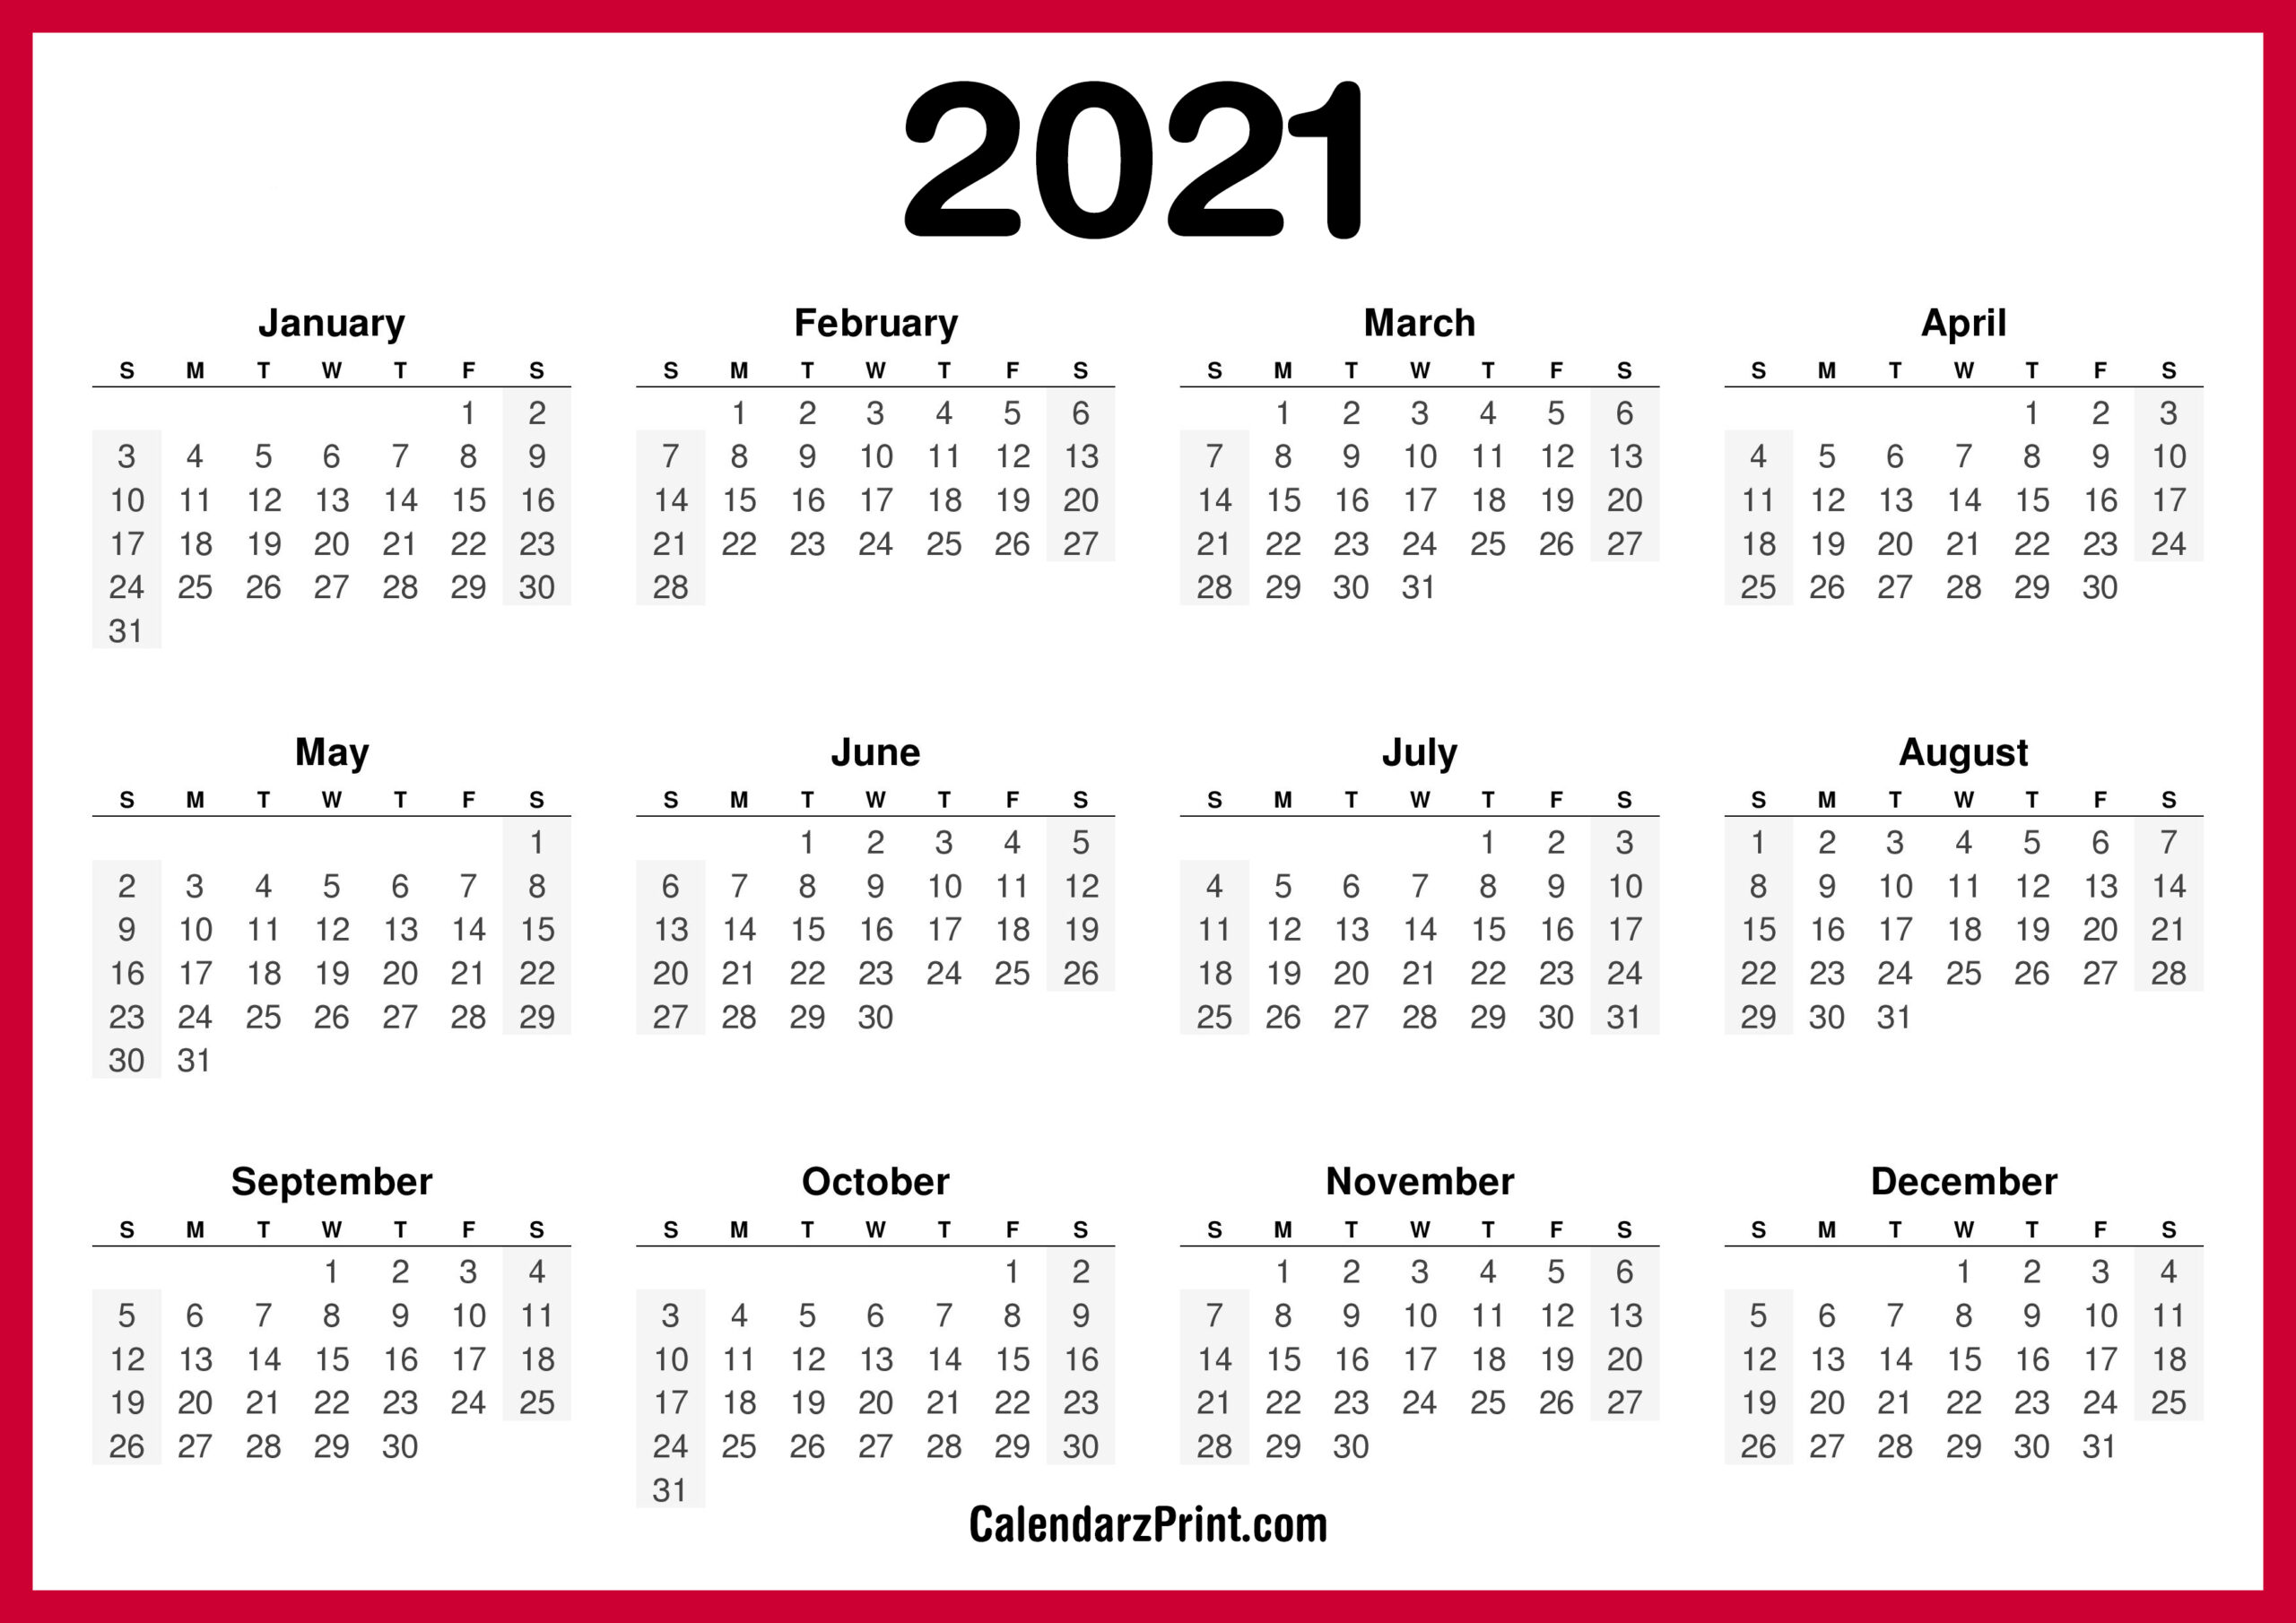 2021 Calendar Printable Free, Horizontal, Hd, Red